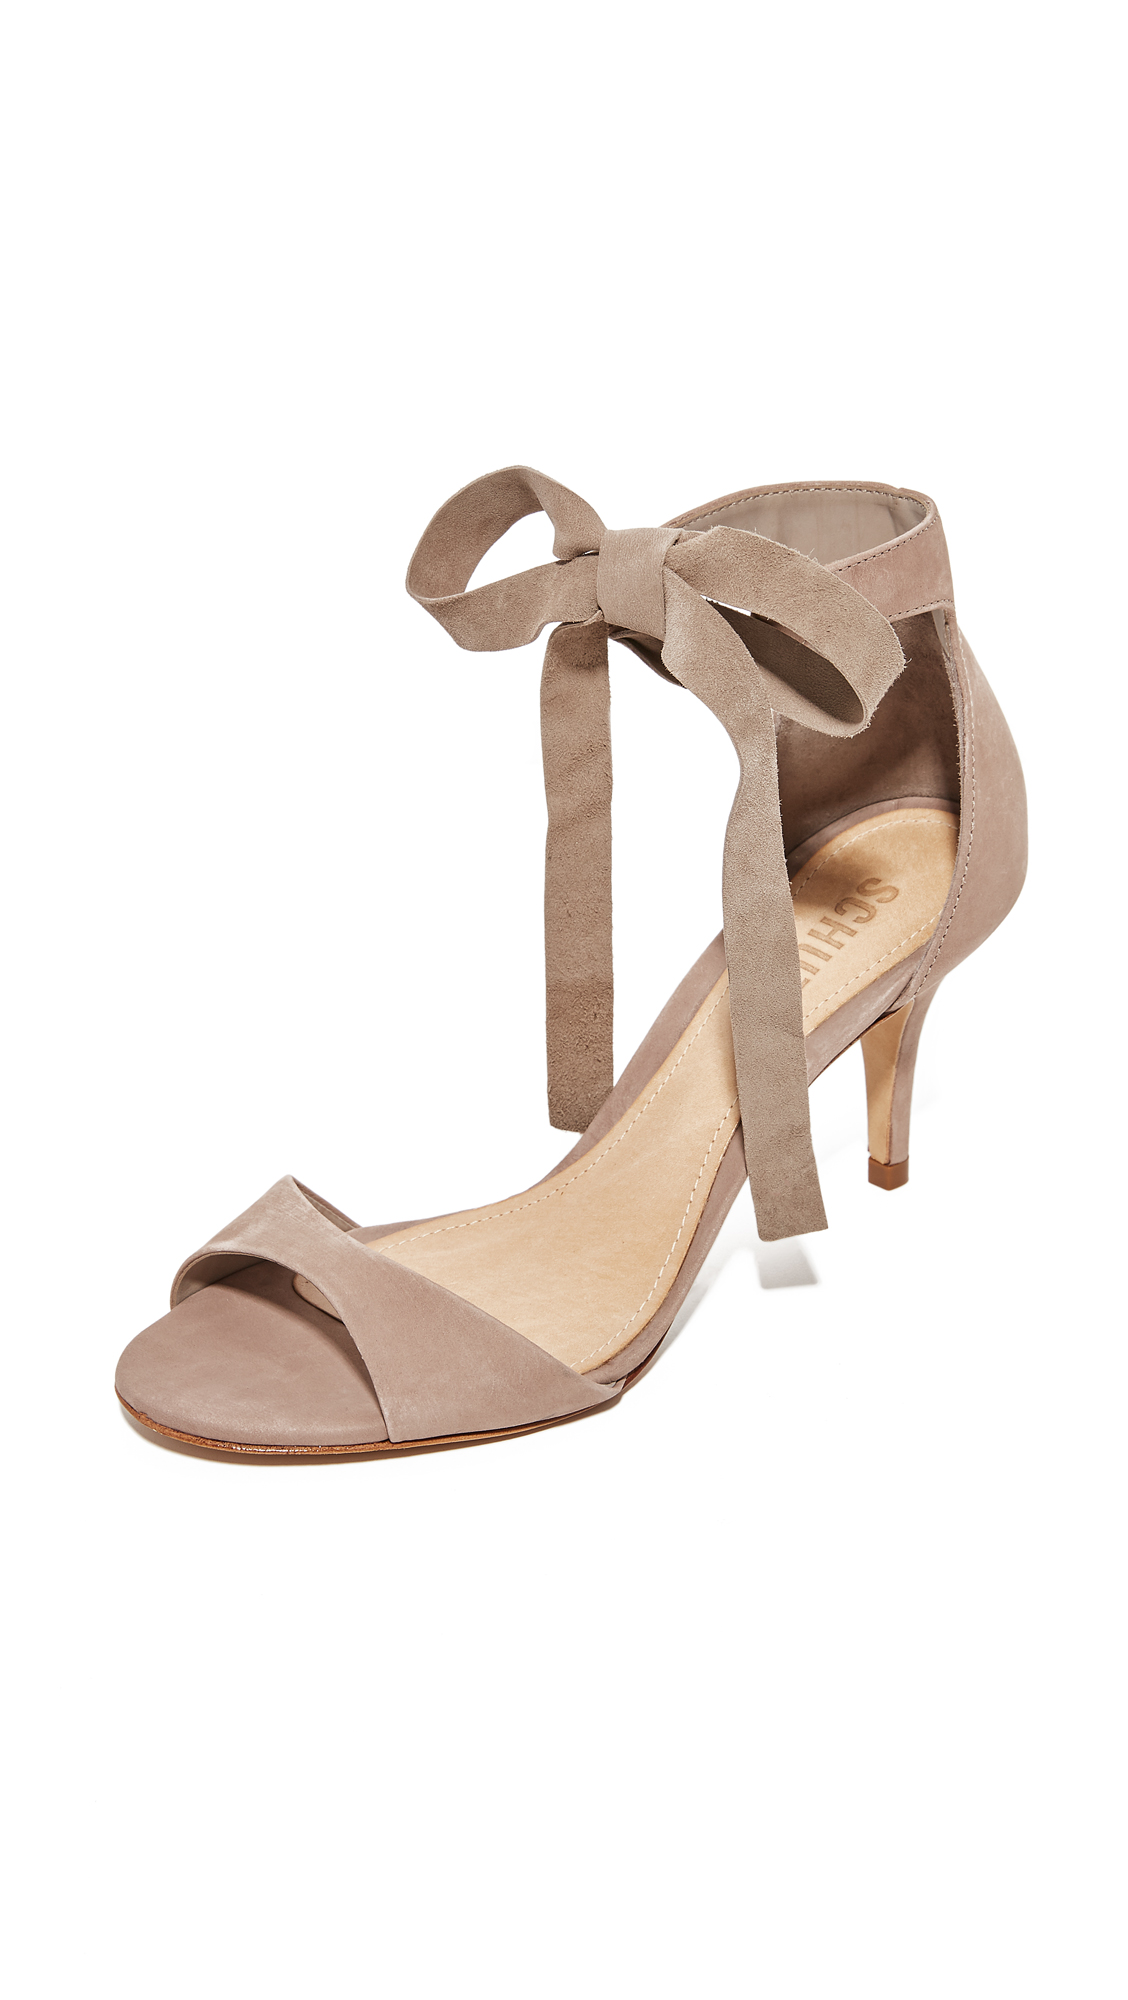 Schutz Tilan Wrap Pumps - Neutral